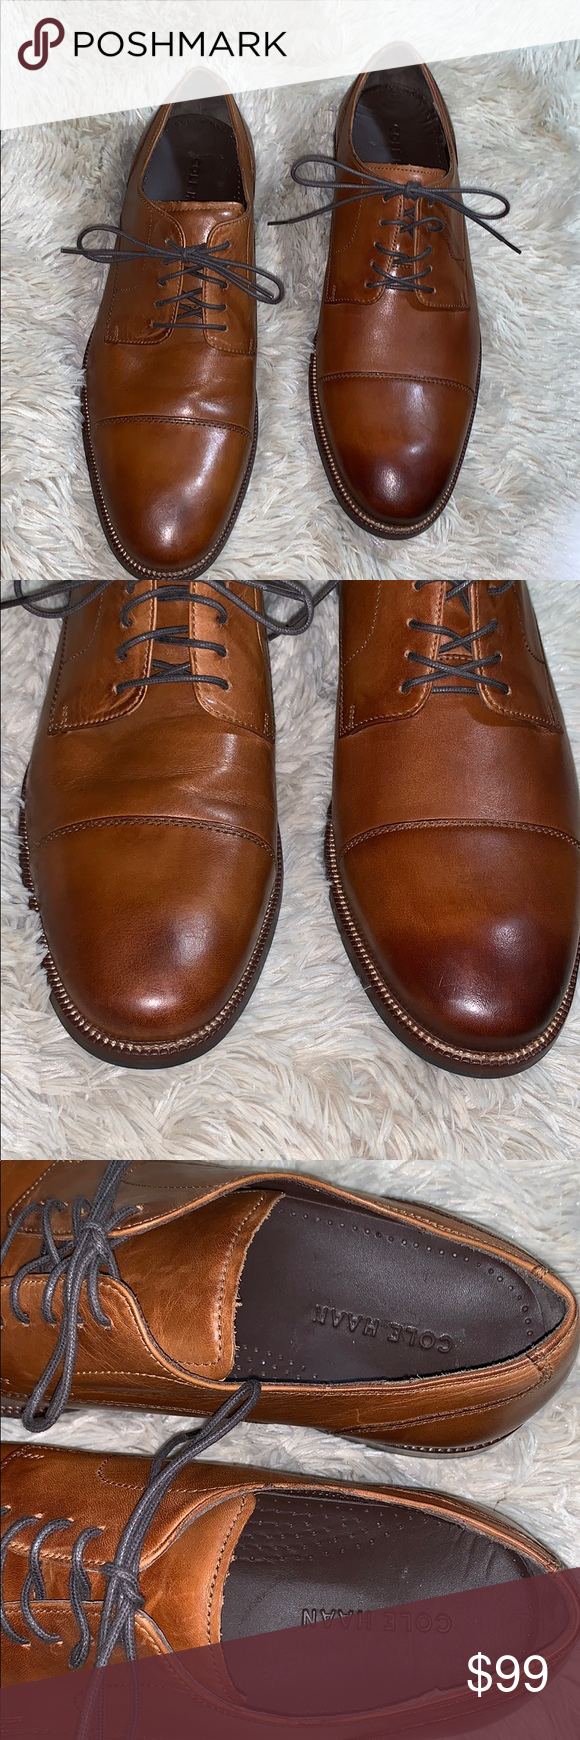 2019 original no sale tax good New COLE HAAN • Benton Plain Brown Leather Derby New Without ...